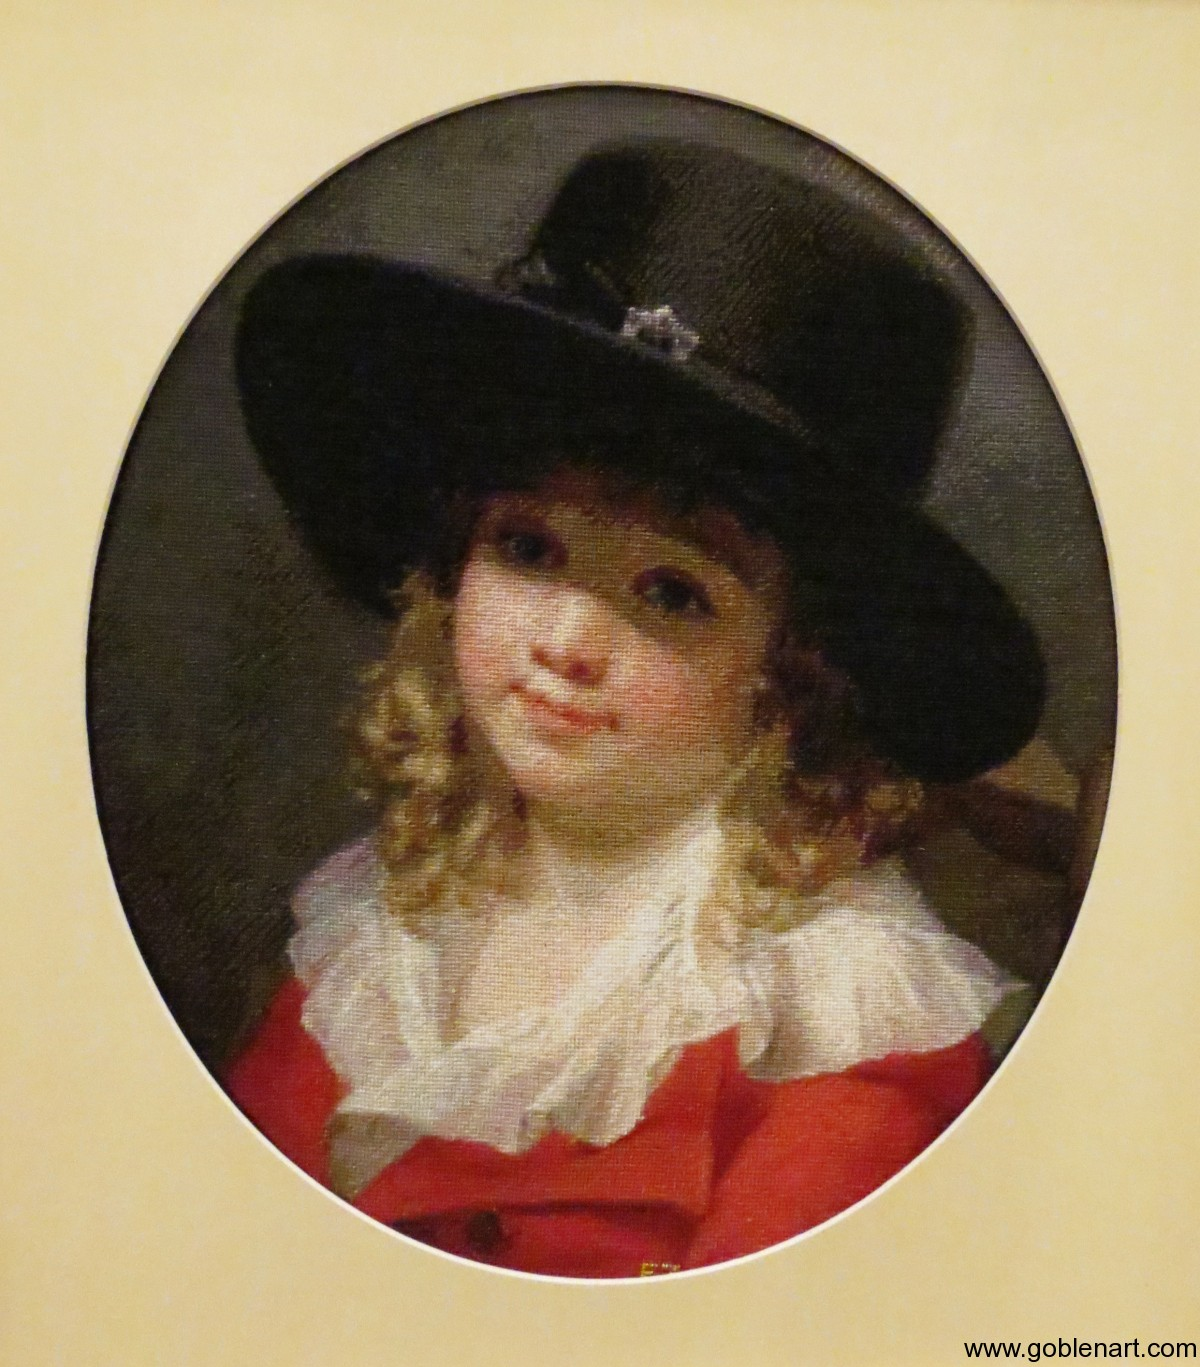 Portrait of a young boy wearing a black hat and red coat